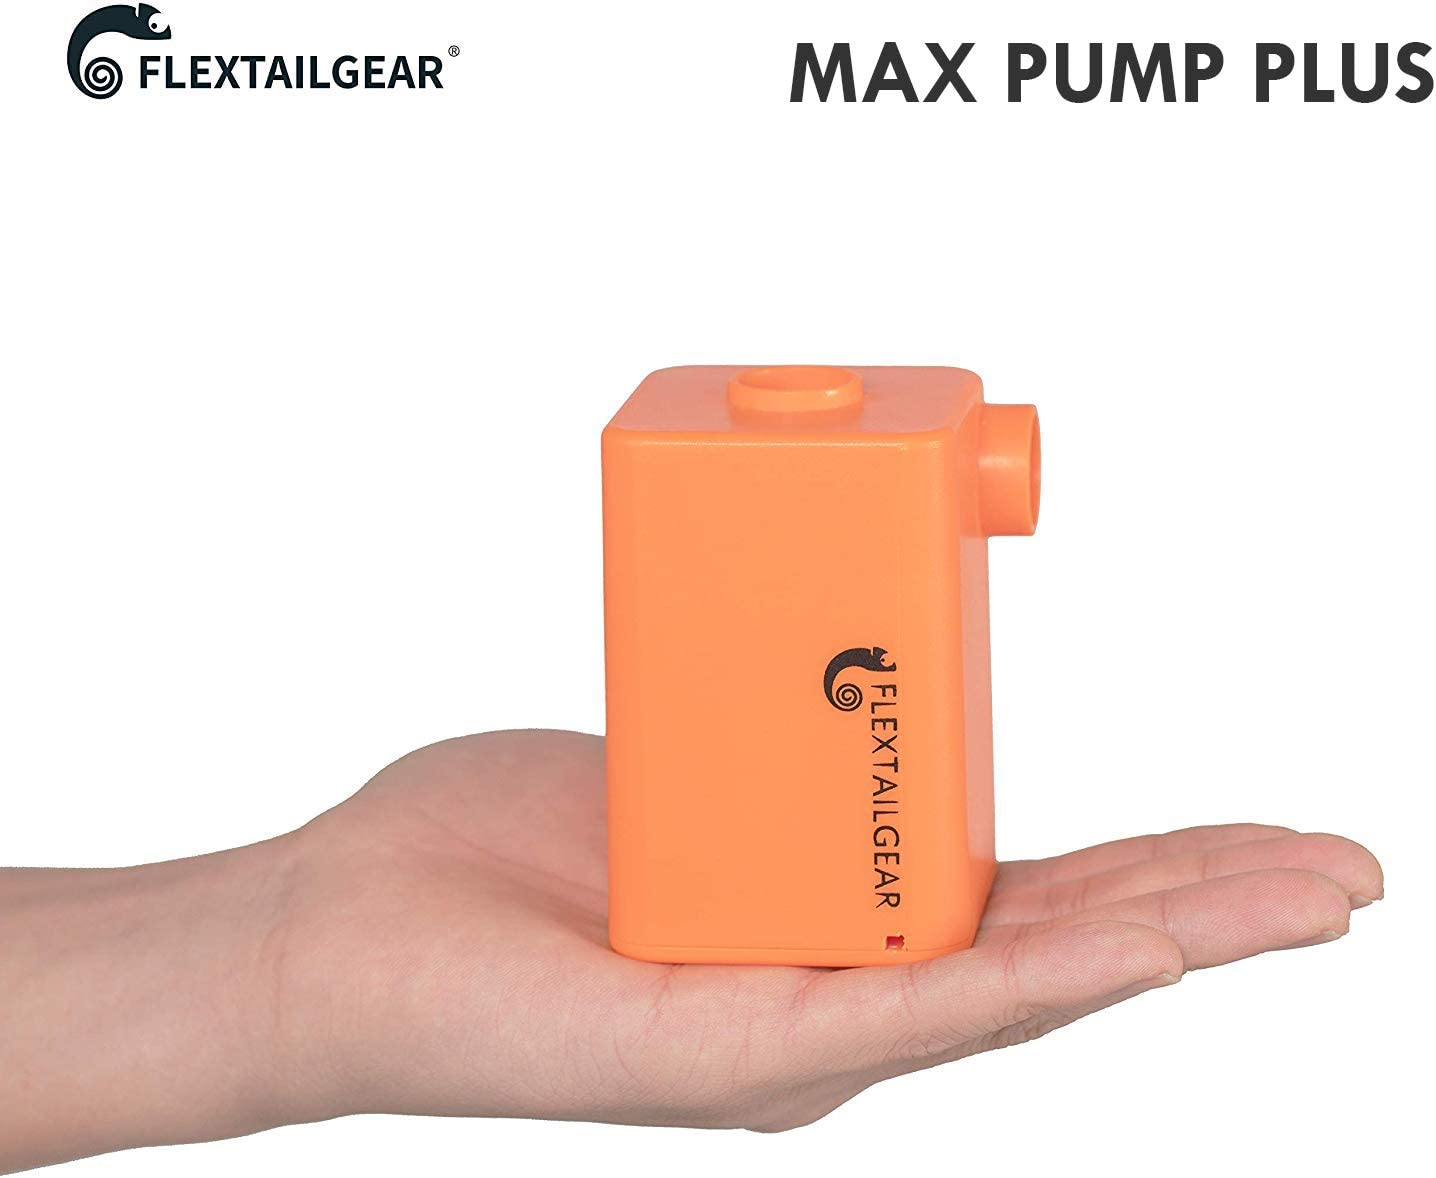 FLEXTAILGEAR - MAX Pump Plus Portable Air Pump with 3600mAh Battery USB Rechargeable Lightest Air Pump to Quick Inflate Deflate for Pool Floats Air Bed Air Mattress Swimming Ring (Orange): Home & Kitchen